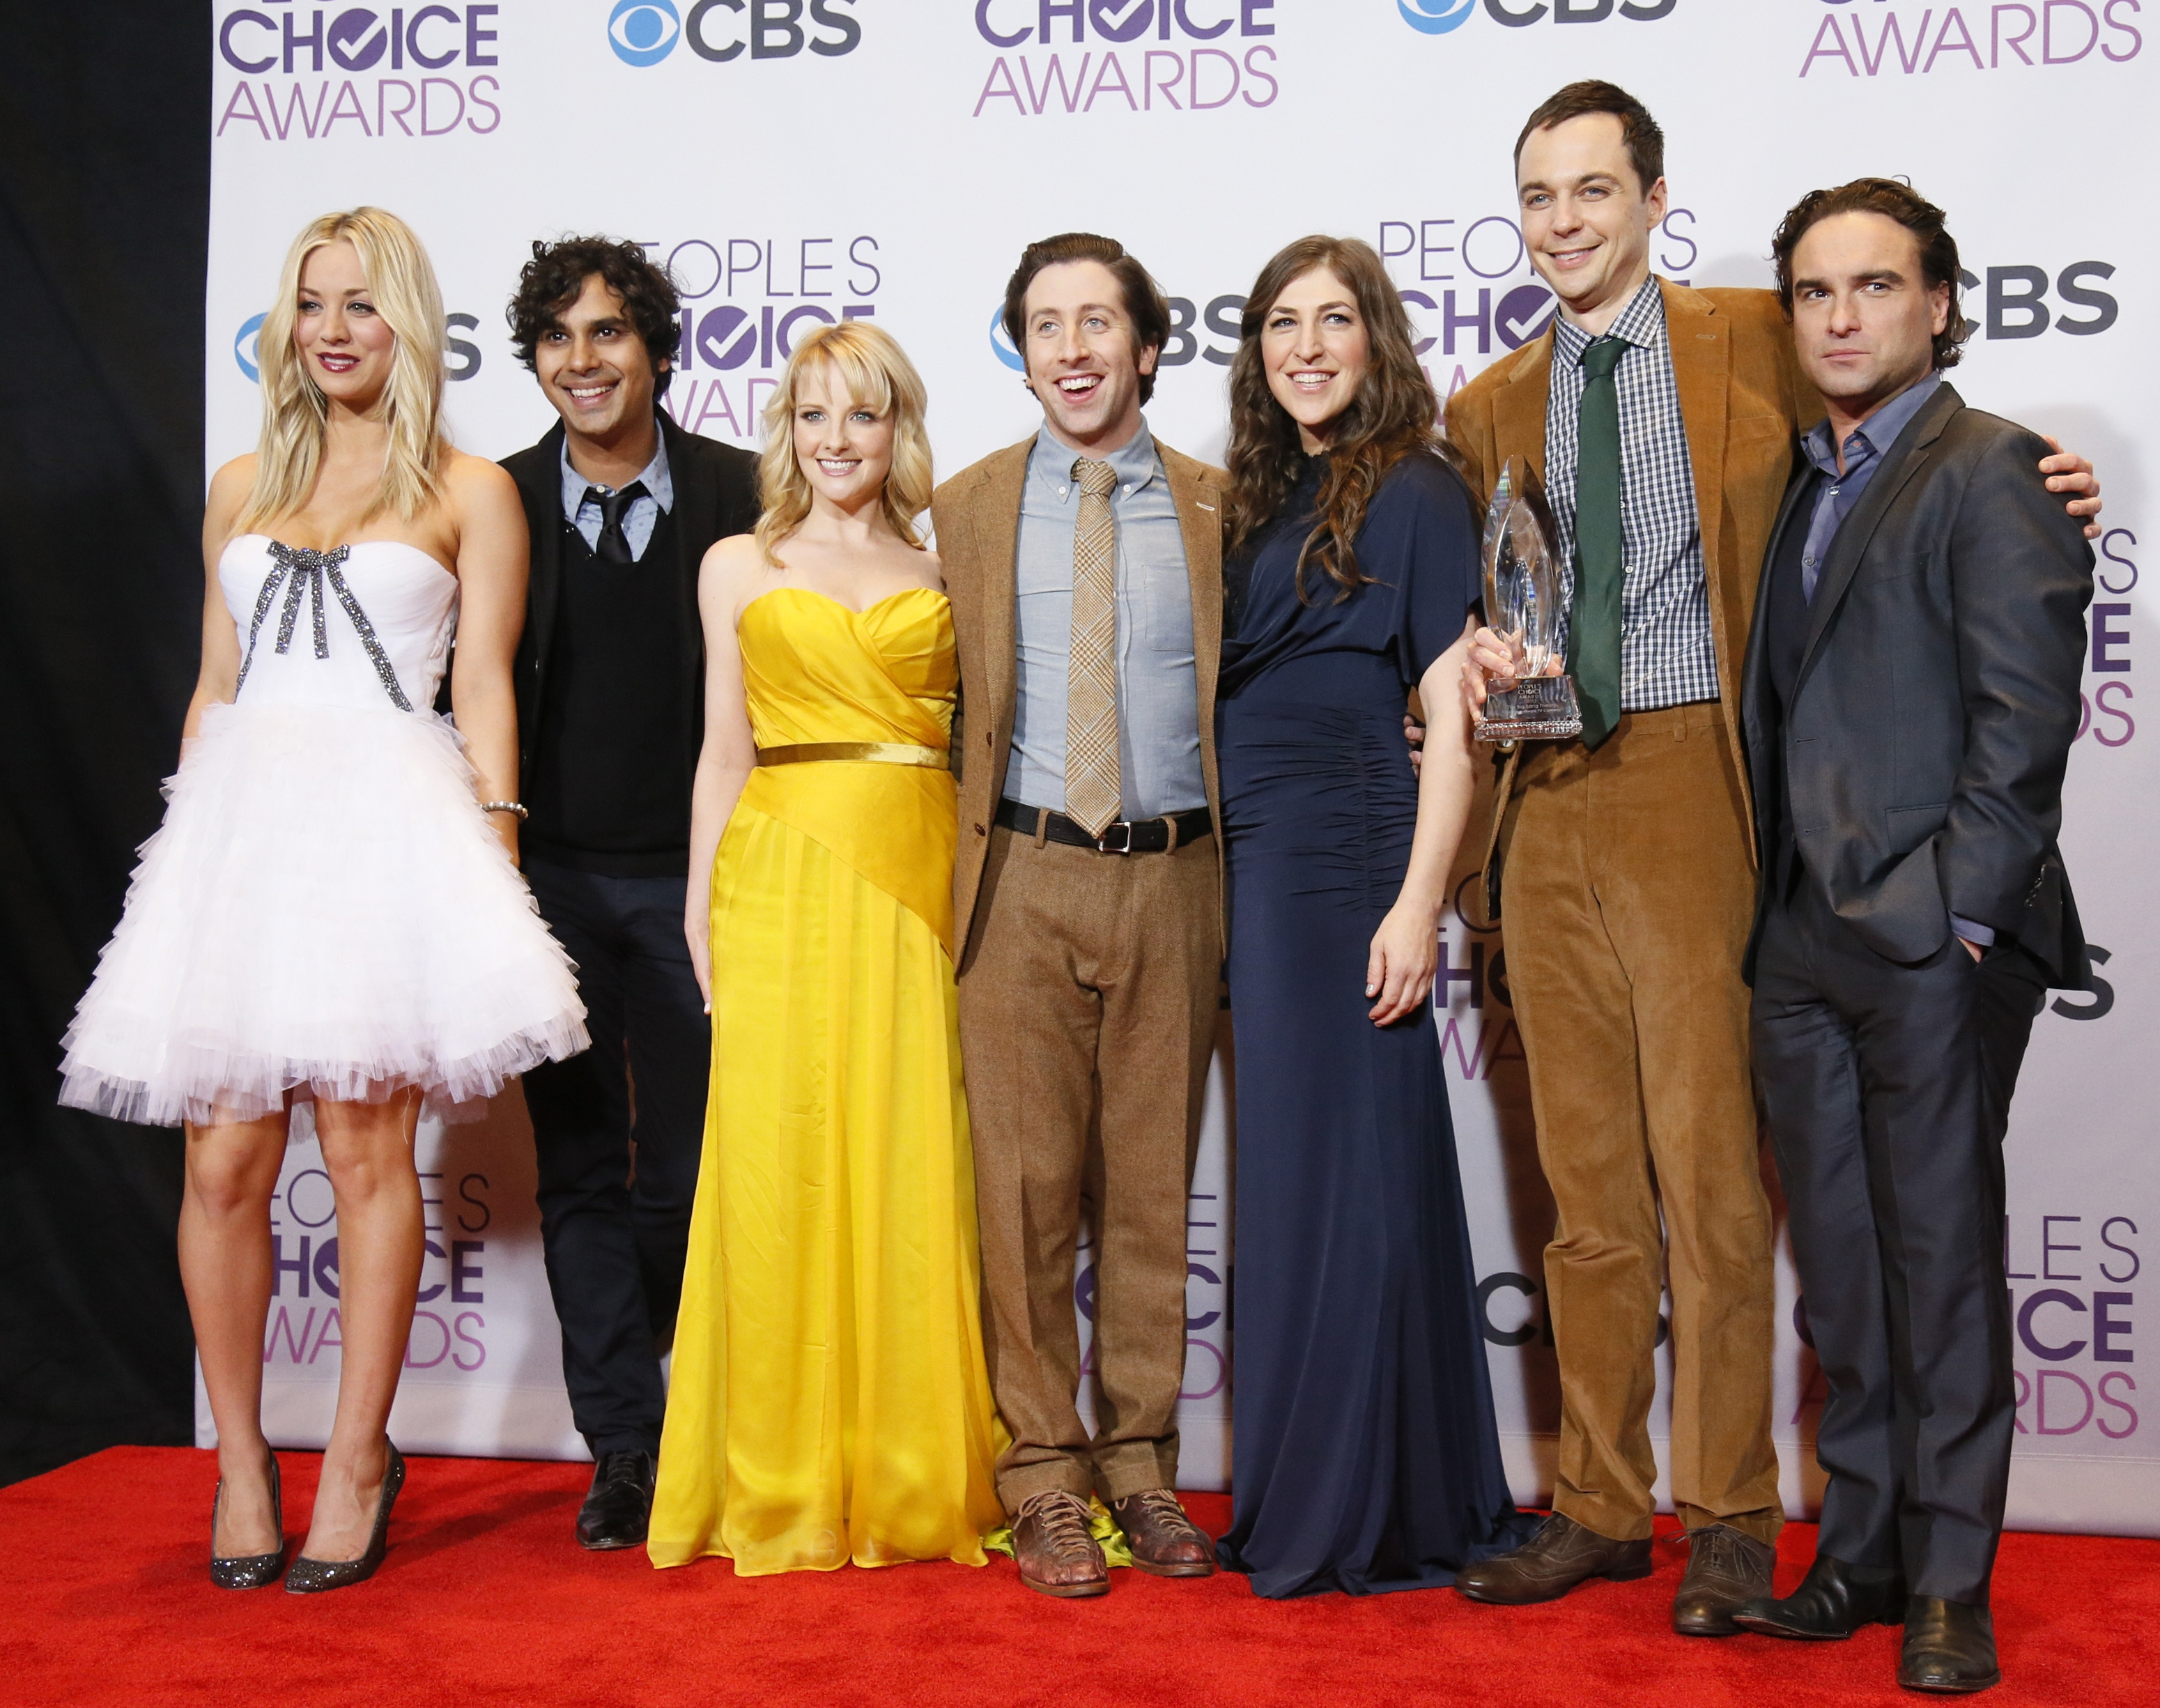 TBBT bags critics choice award